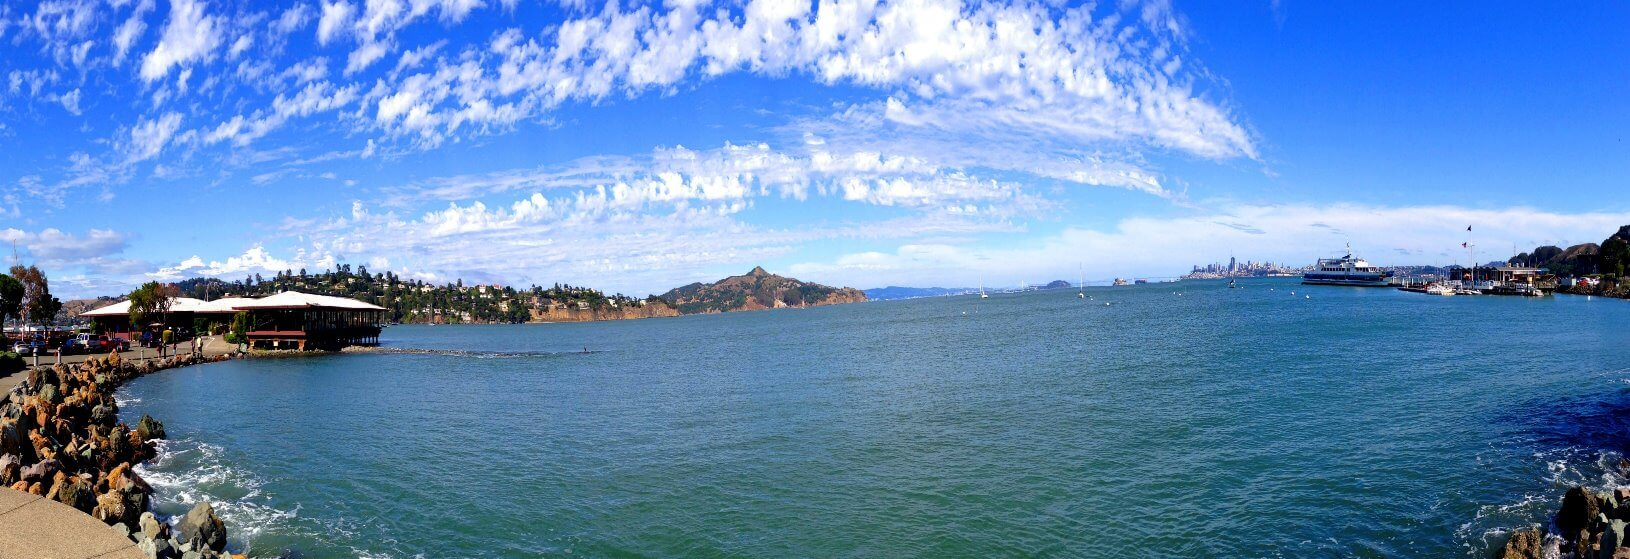 Things to do in Sausalito Ferry Cruise Boat Tours from San Francisco